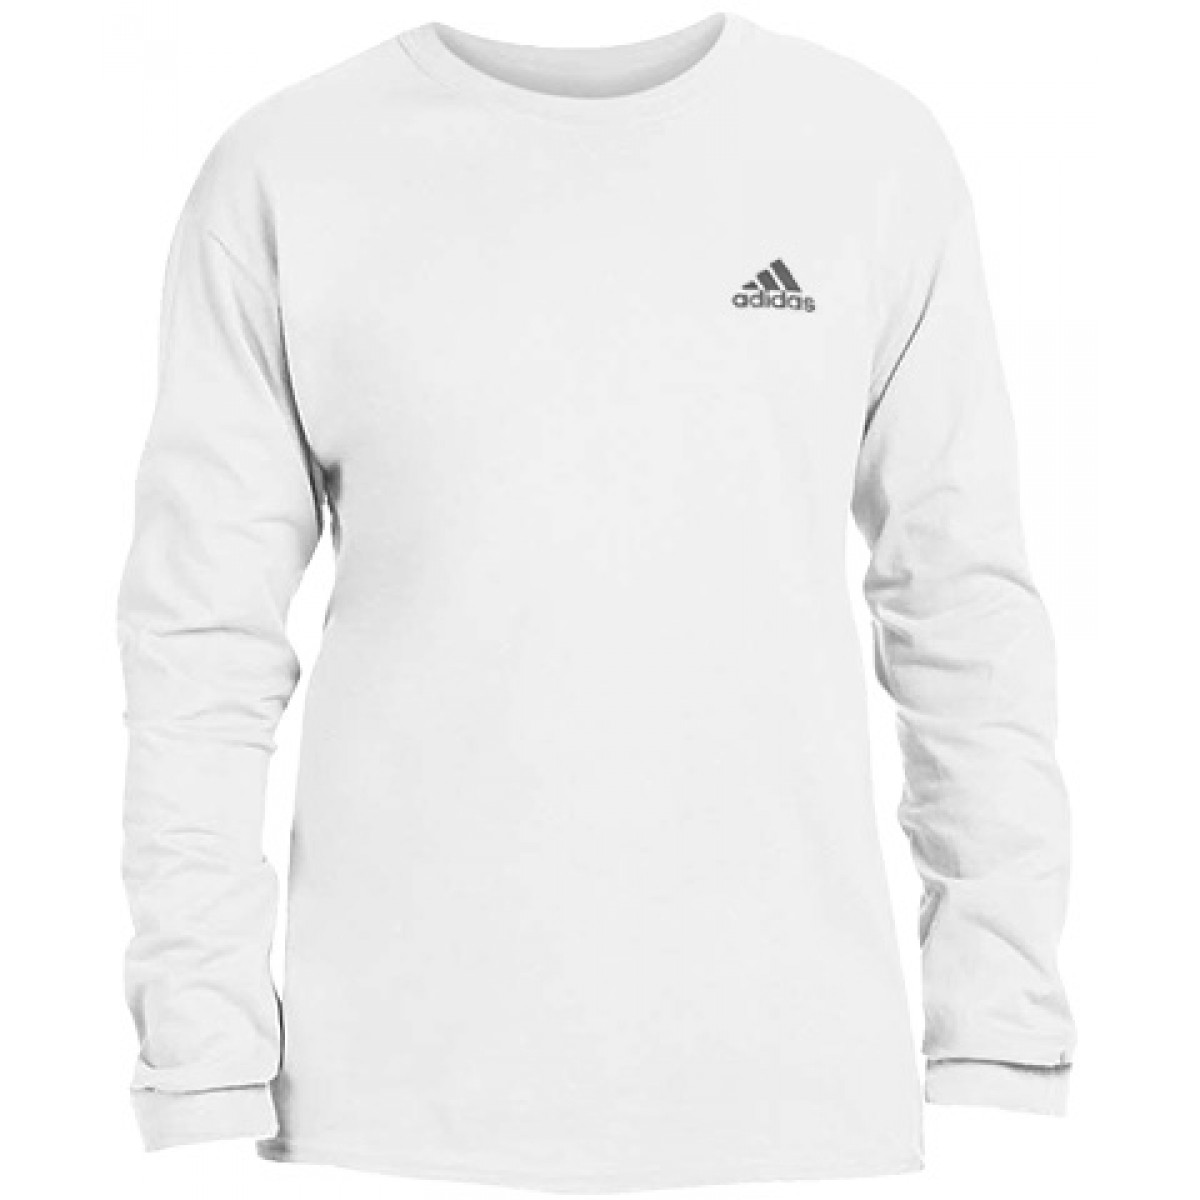 Men's Ultimate Long Sleeve Adidas Crew Tee-White-S